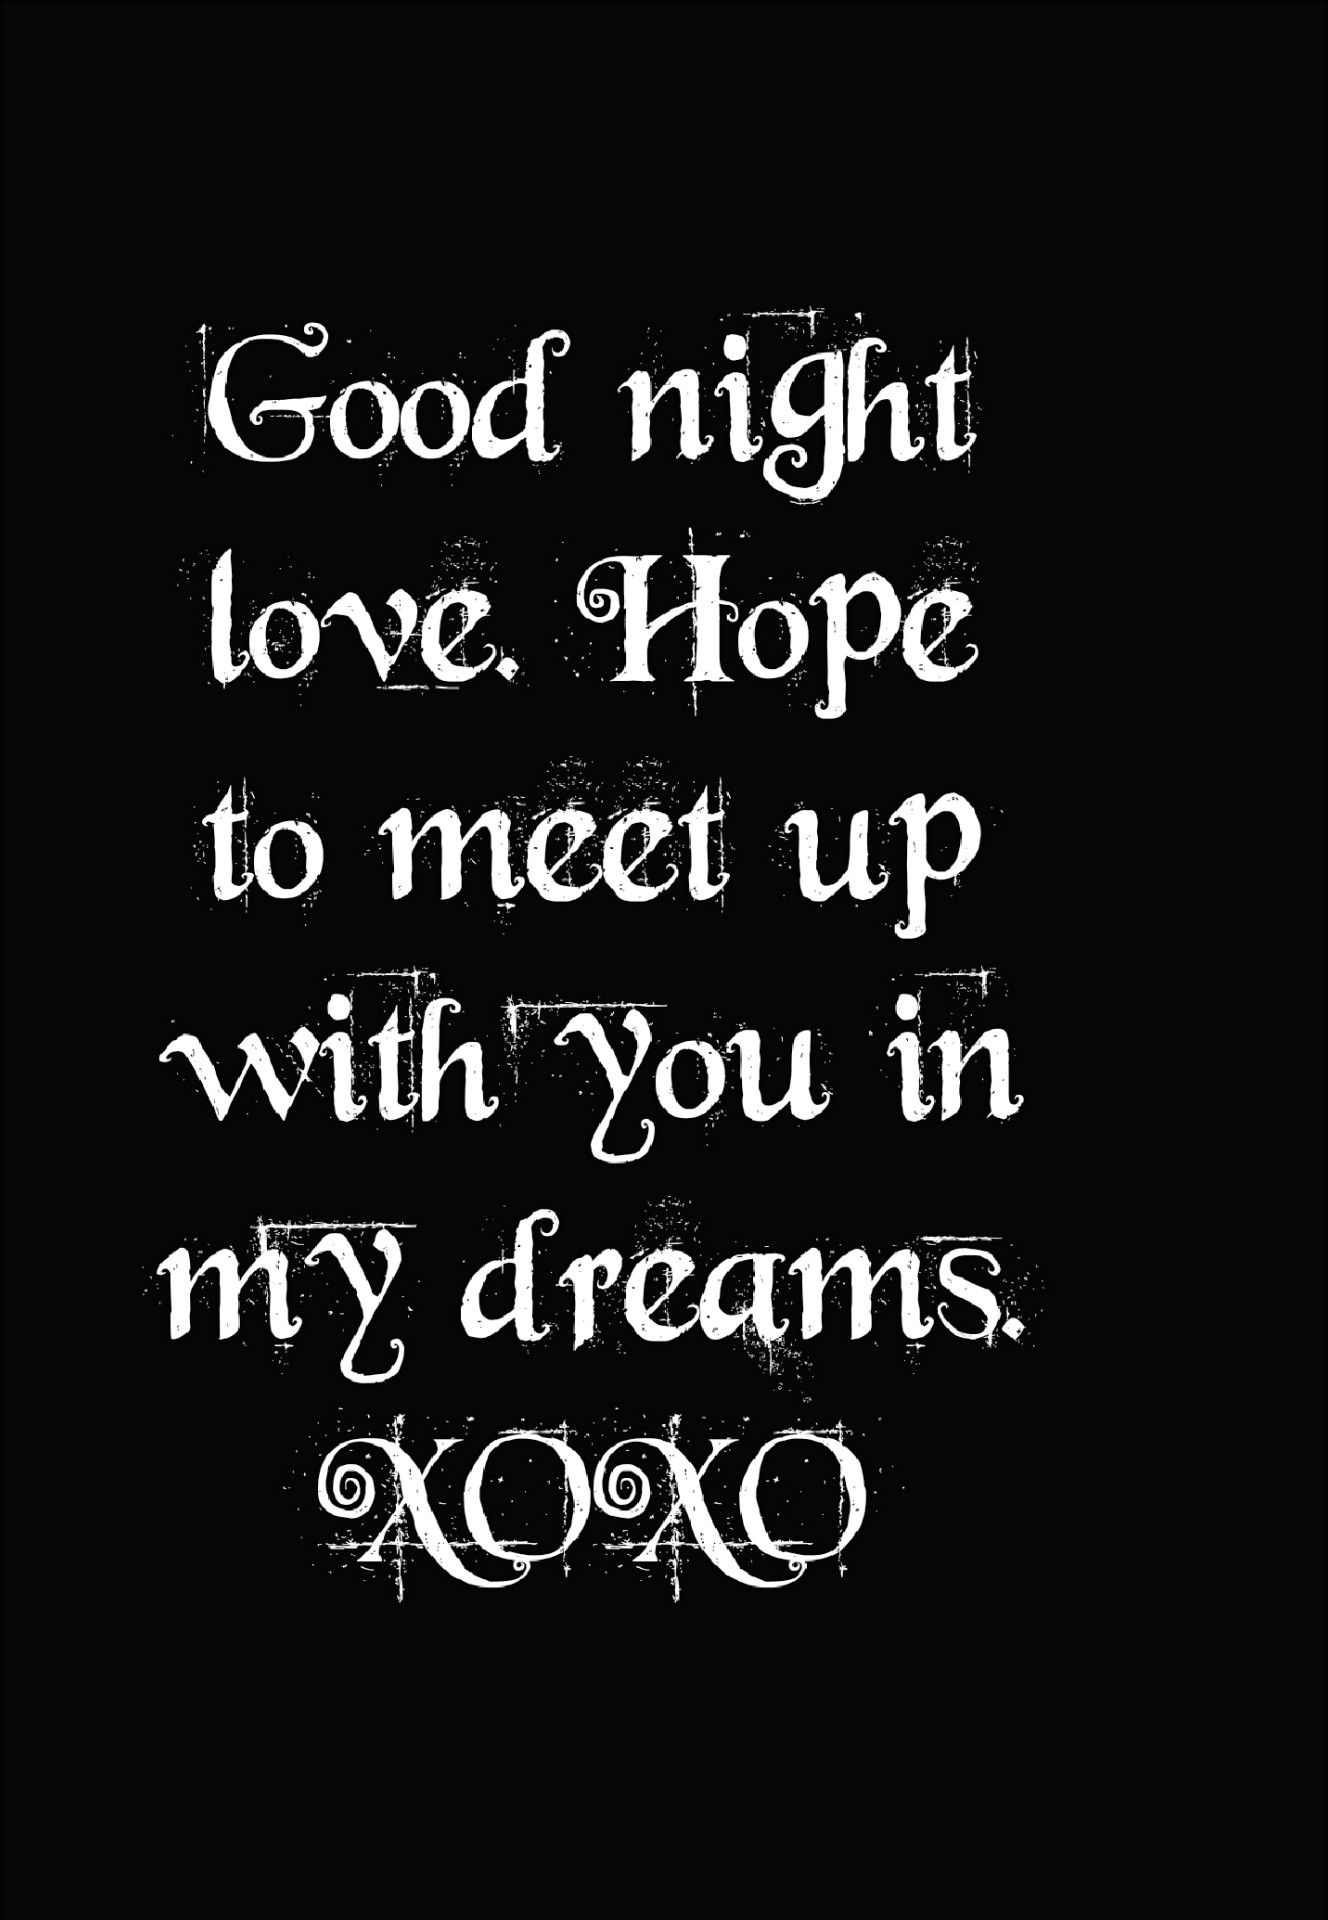 I Will Meet You In Our Dreams With A Big Hug And A Soft Kiss Sweetheart Sweetest Dreams Good Night Love Messages Flirty Good Morning Quotes Sweet Dream Quotes